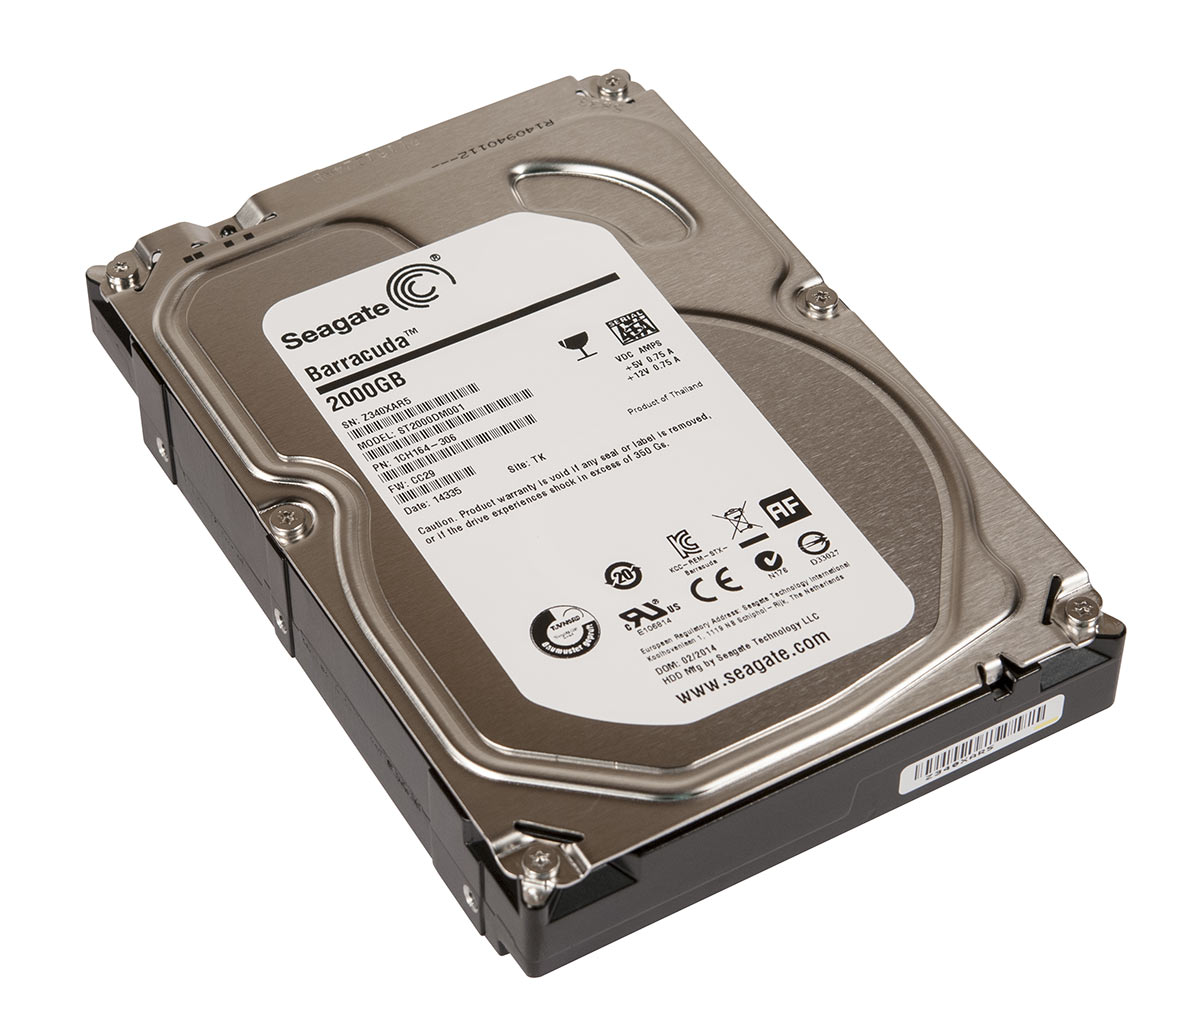 ST2000DM001 (Seagate Barracuda)